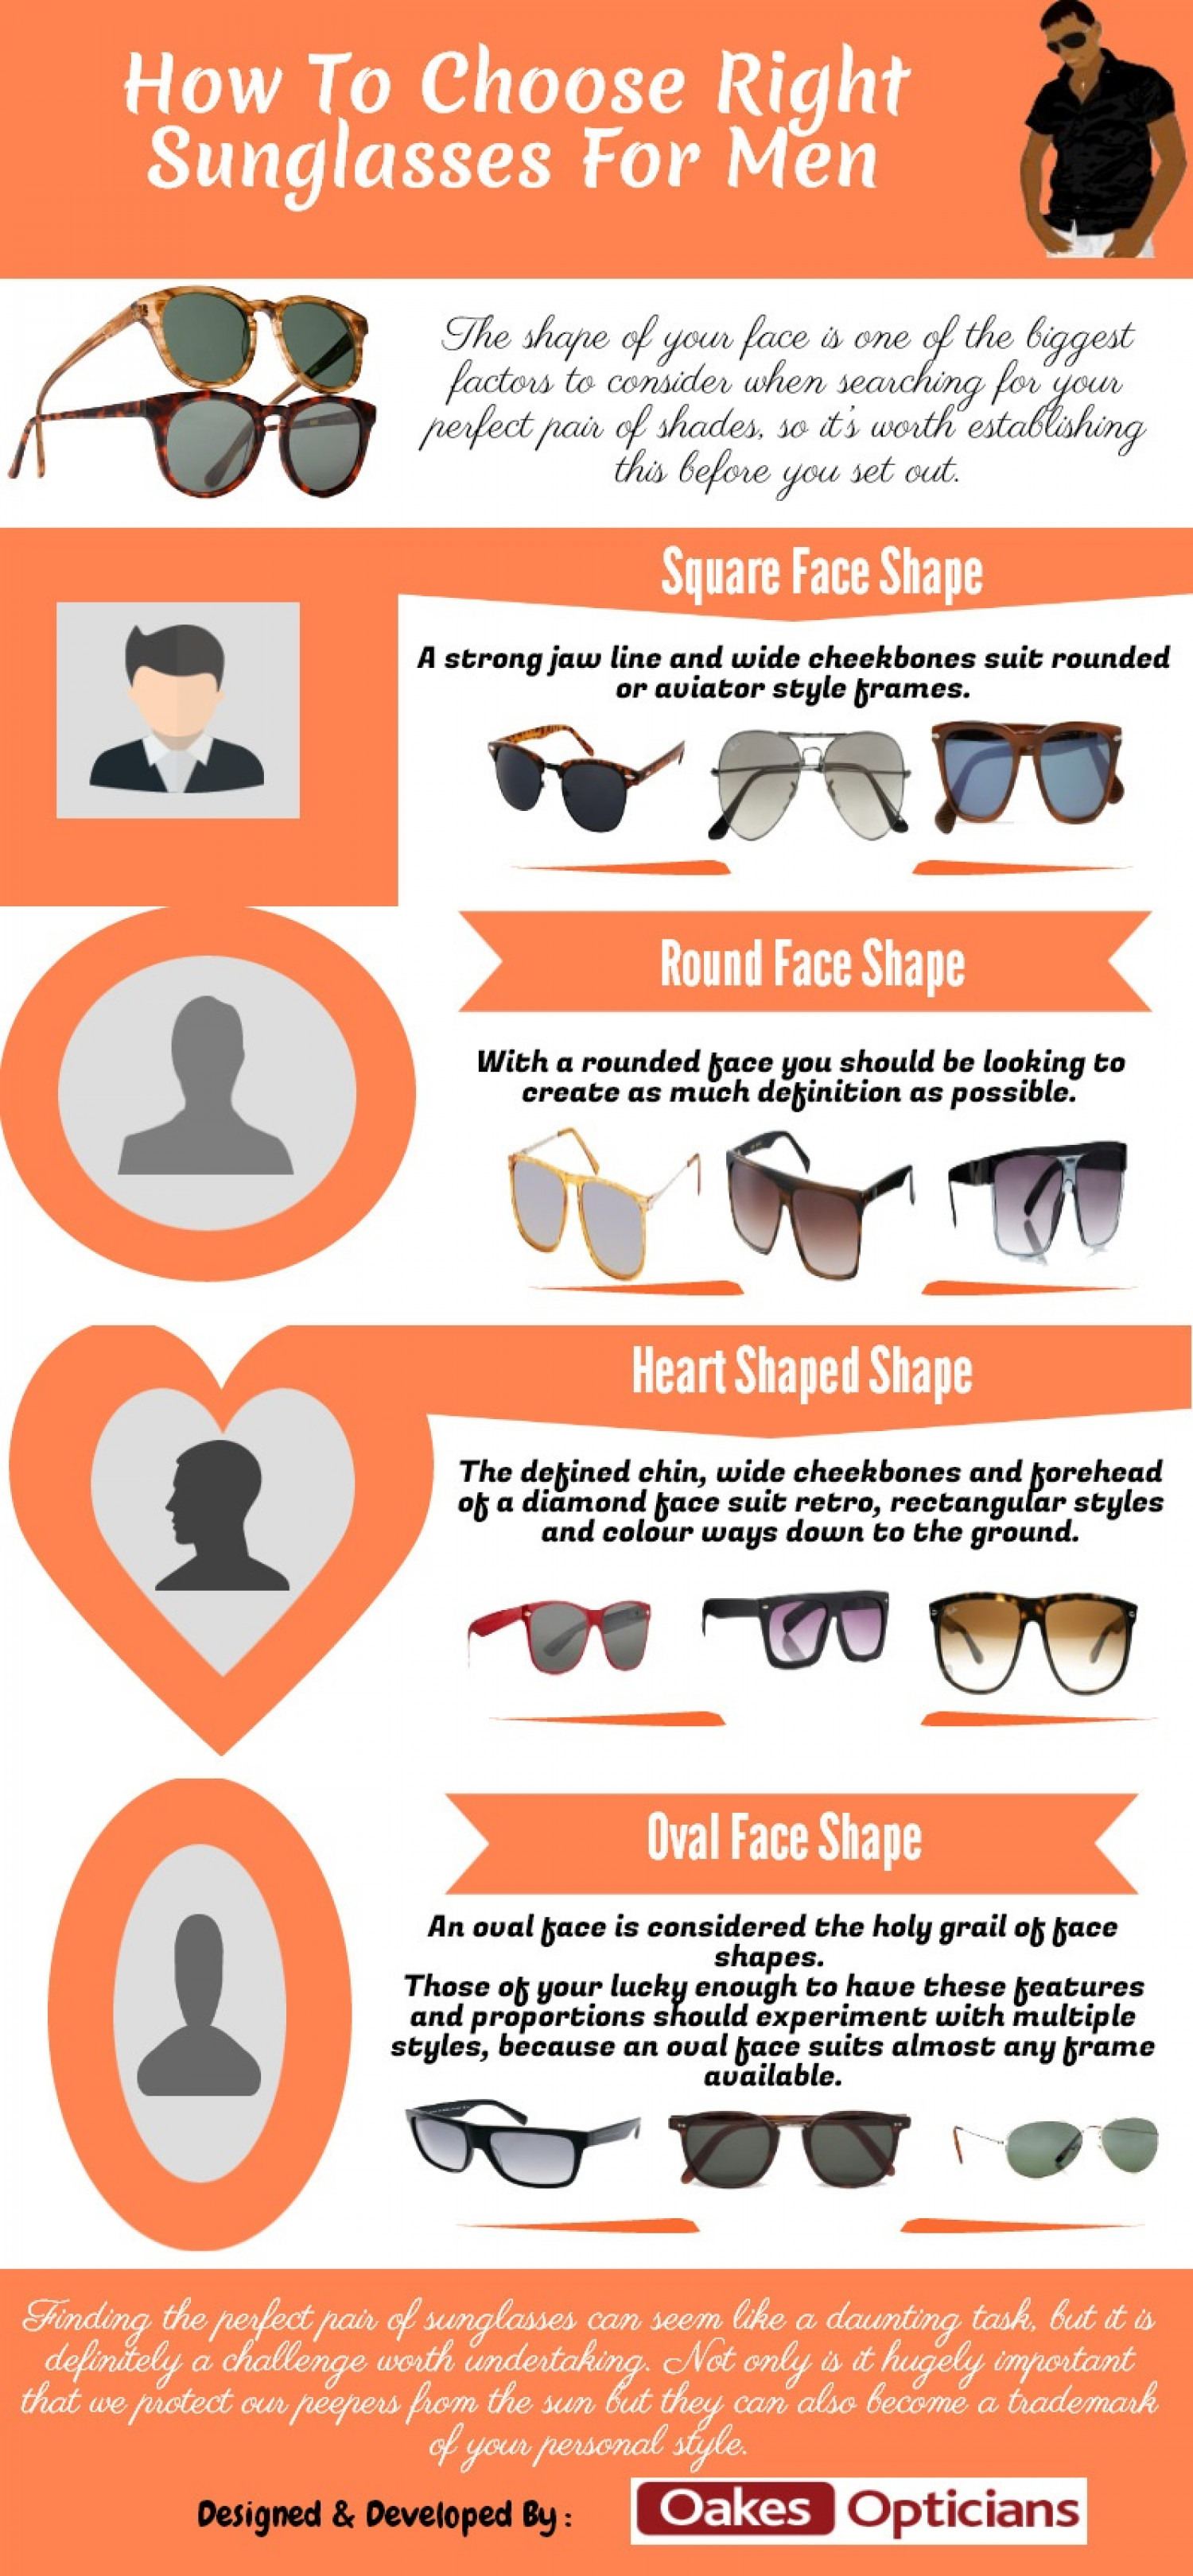 How To Choose Right Sunglasses For Men